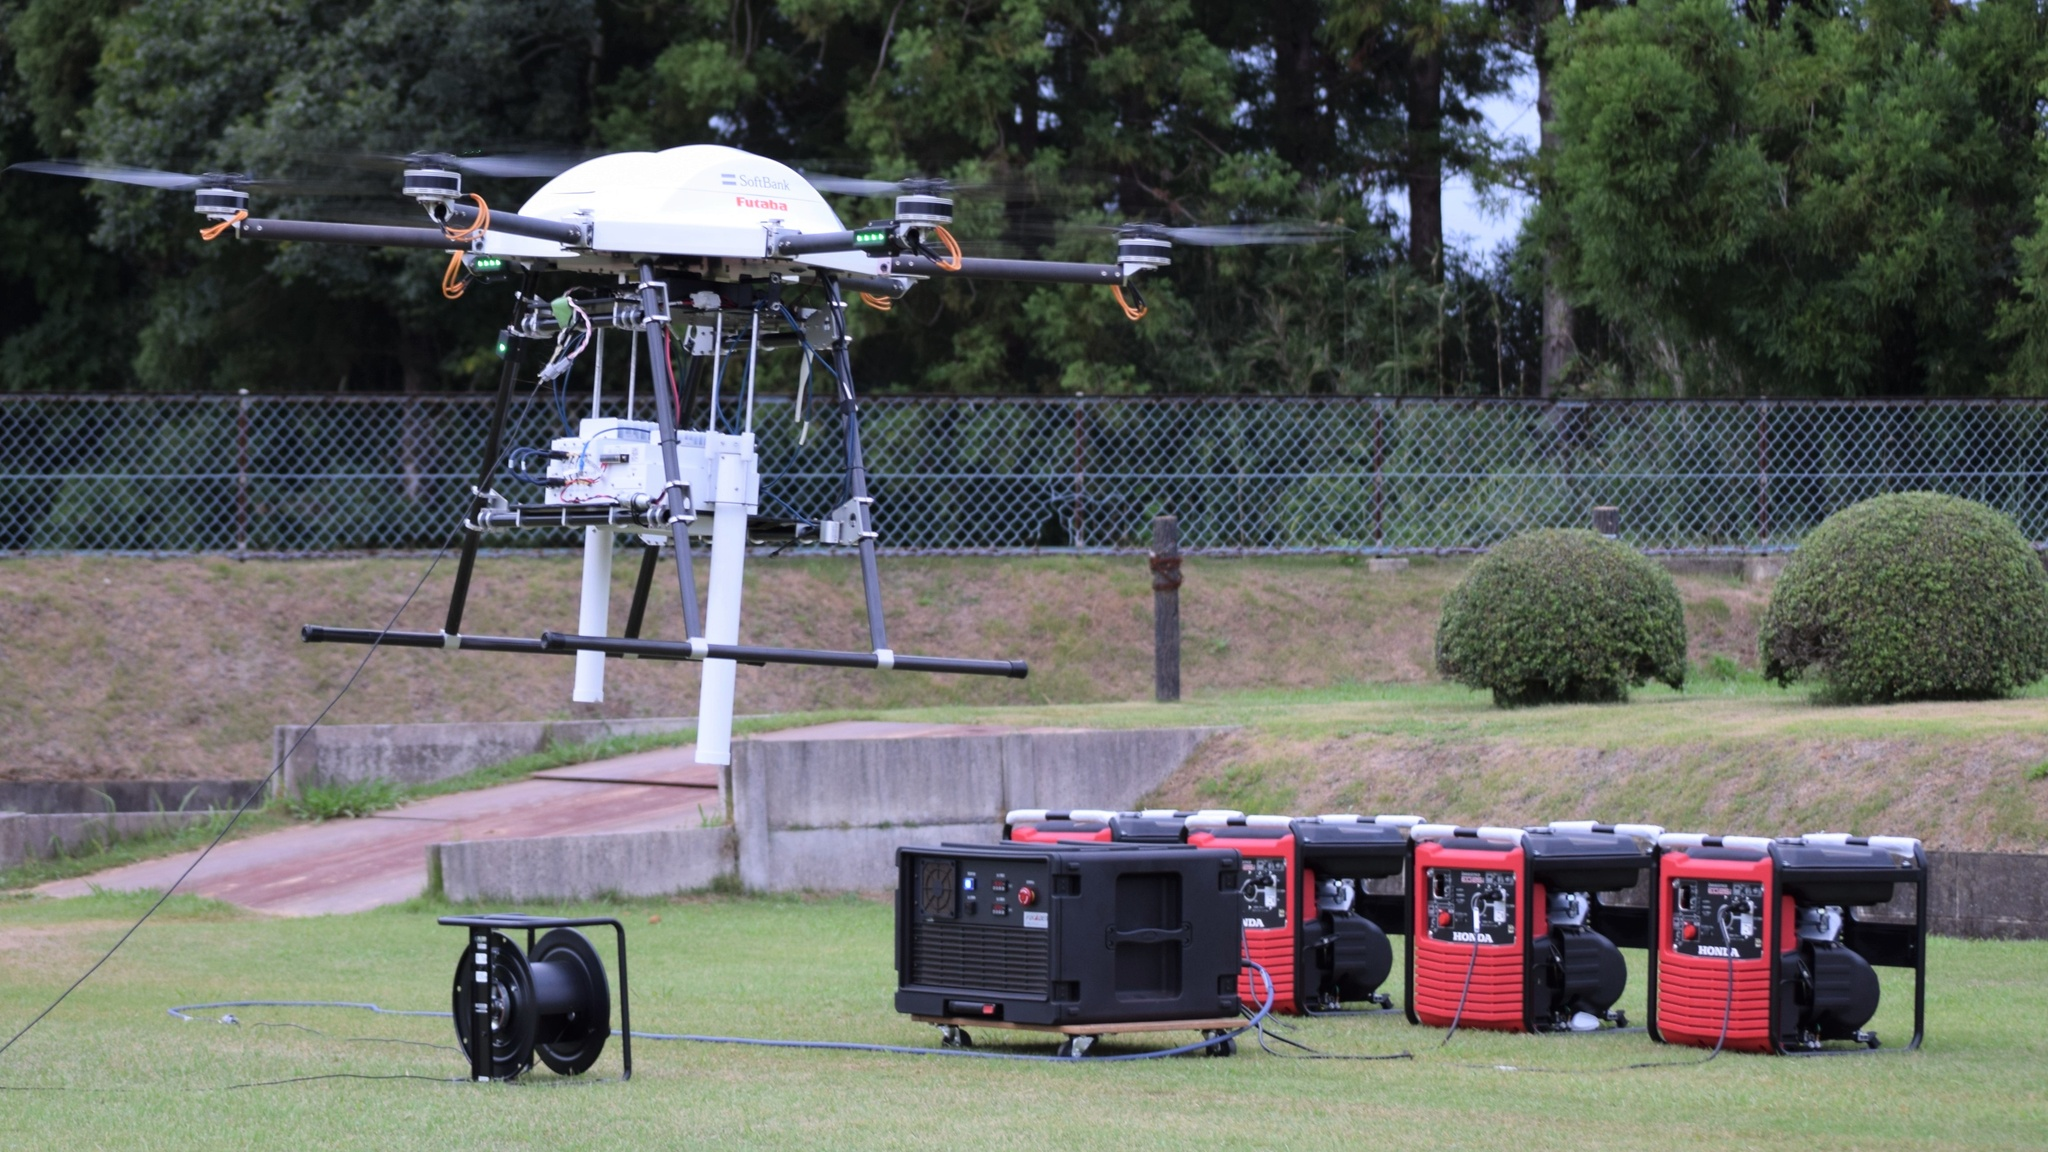 nikkei.com - Staff Writer - SoftBank's drones keep mobile network alive in disaster-hit Japan